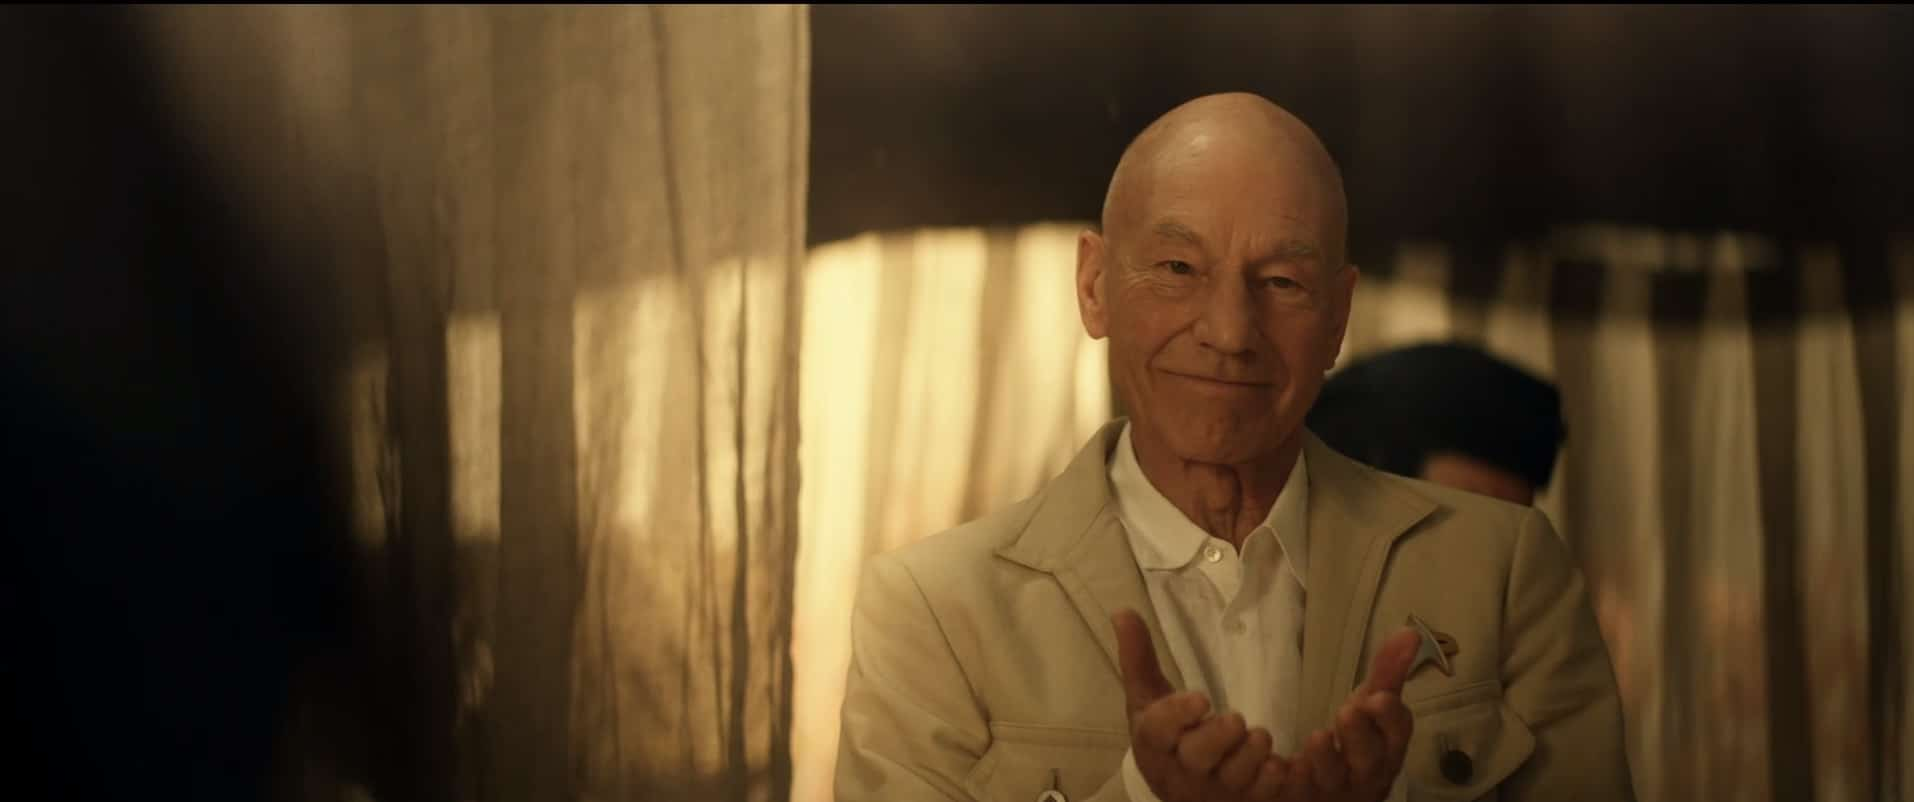 """L'assoluta verità"" – Star Trek: Picard. Guida all'episodio"